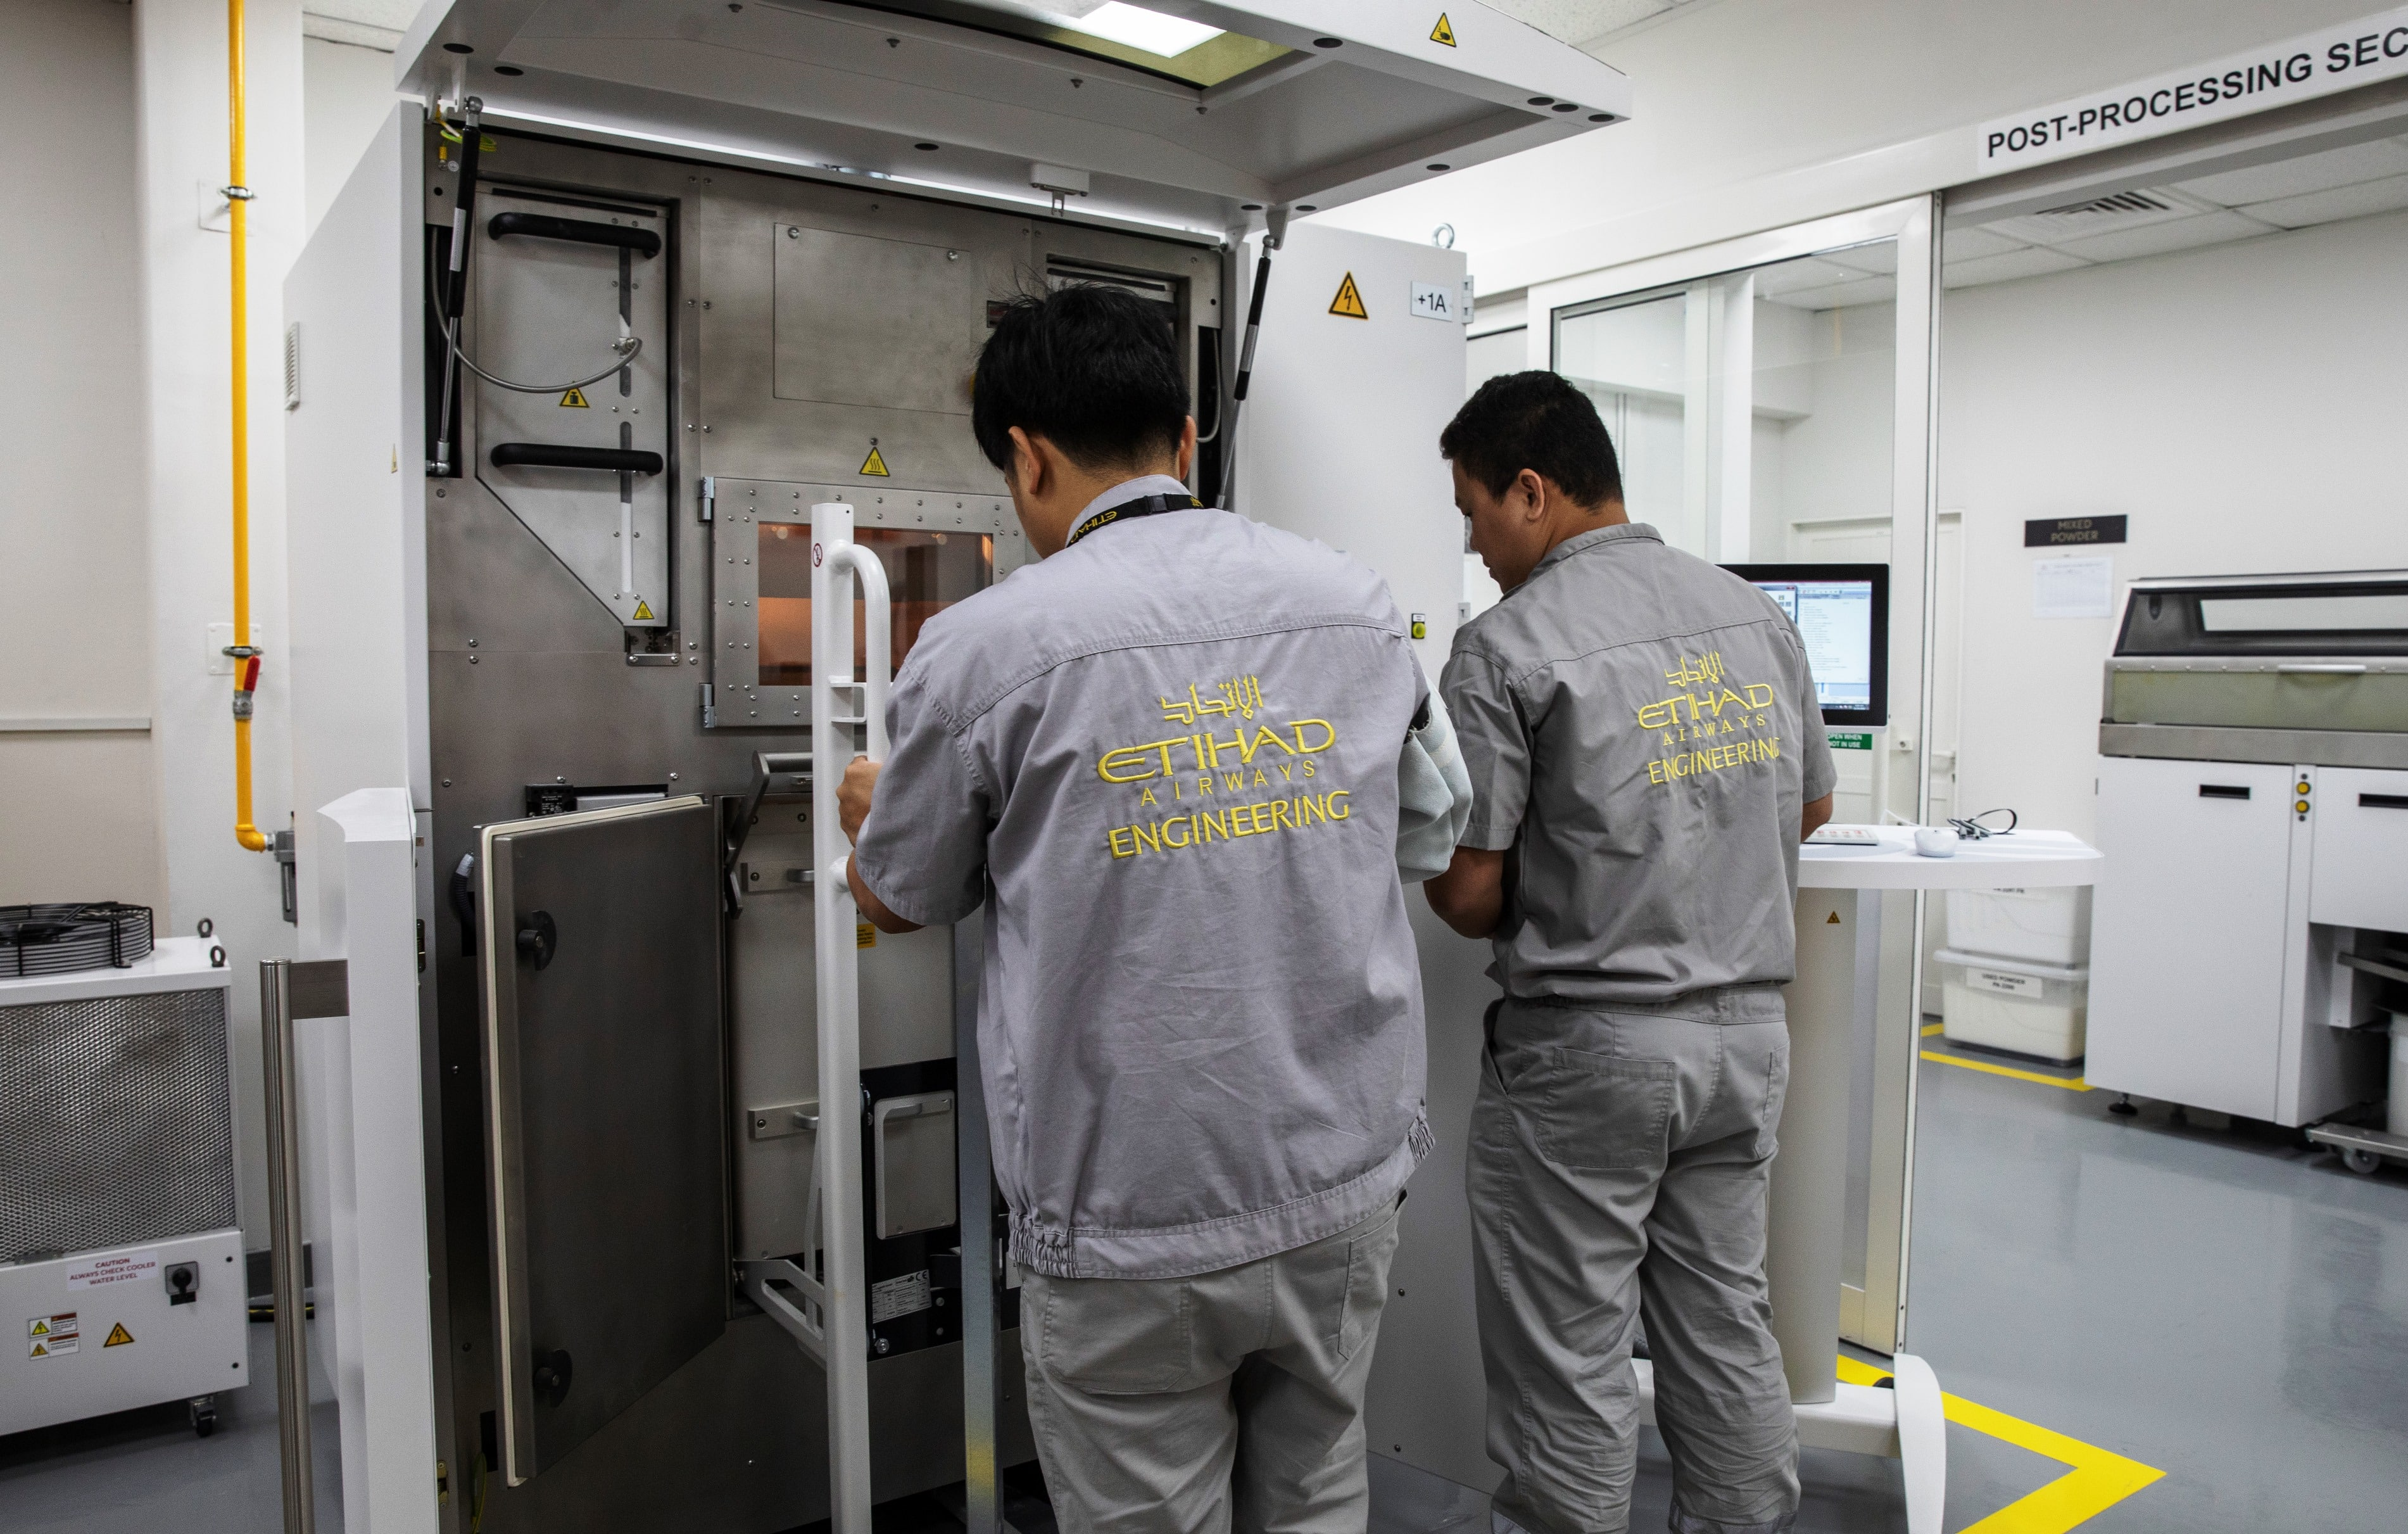 Etihad Engineering engineers at work using the pioneering EOS Additive Manufacturing 3D Printer which is now located at Etihad Engineering's facility located in Abu Dhabi. (Source: Etihad Aviation Group)